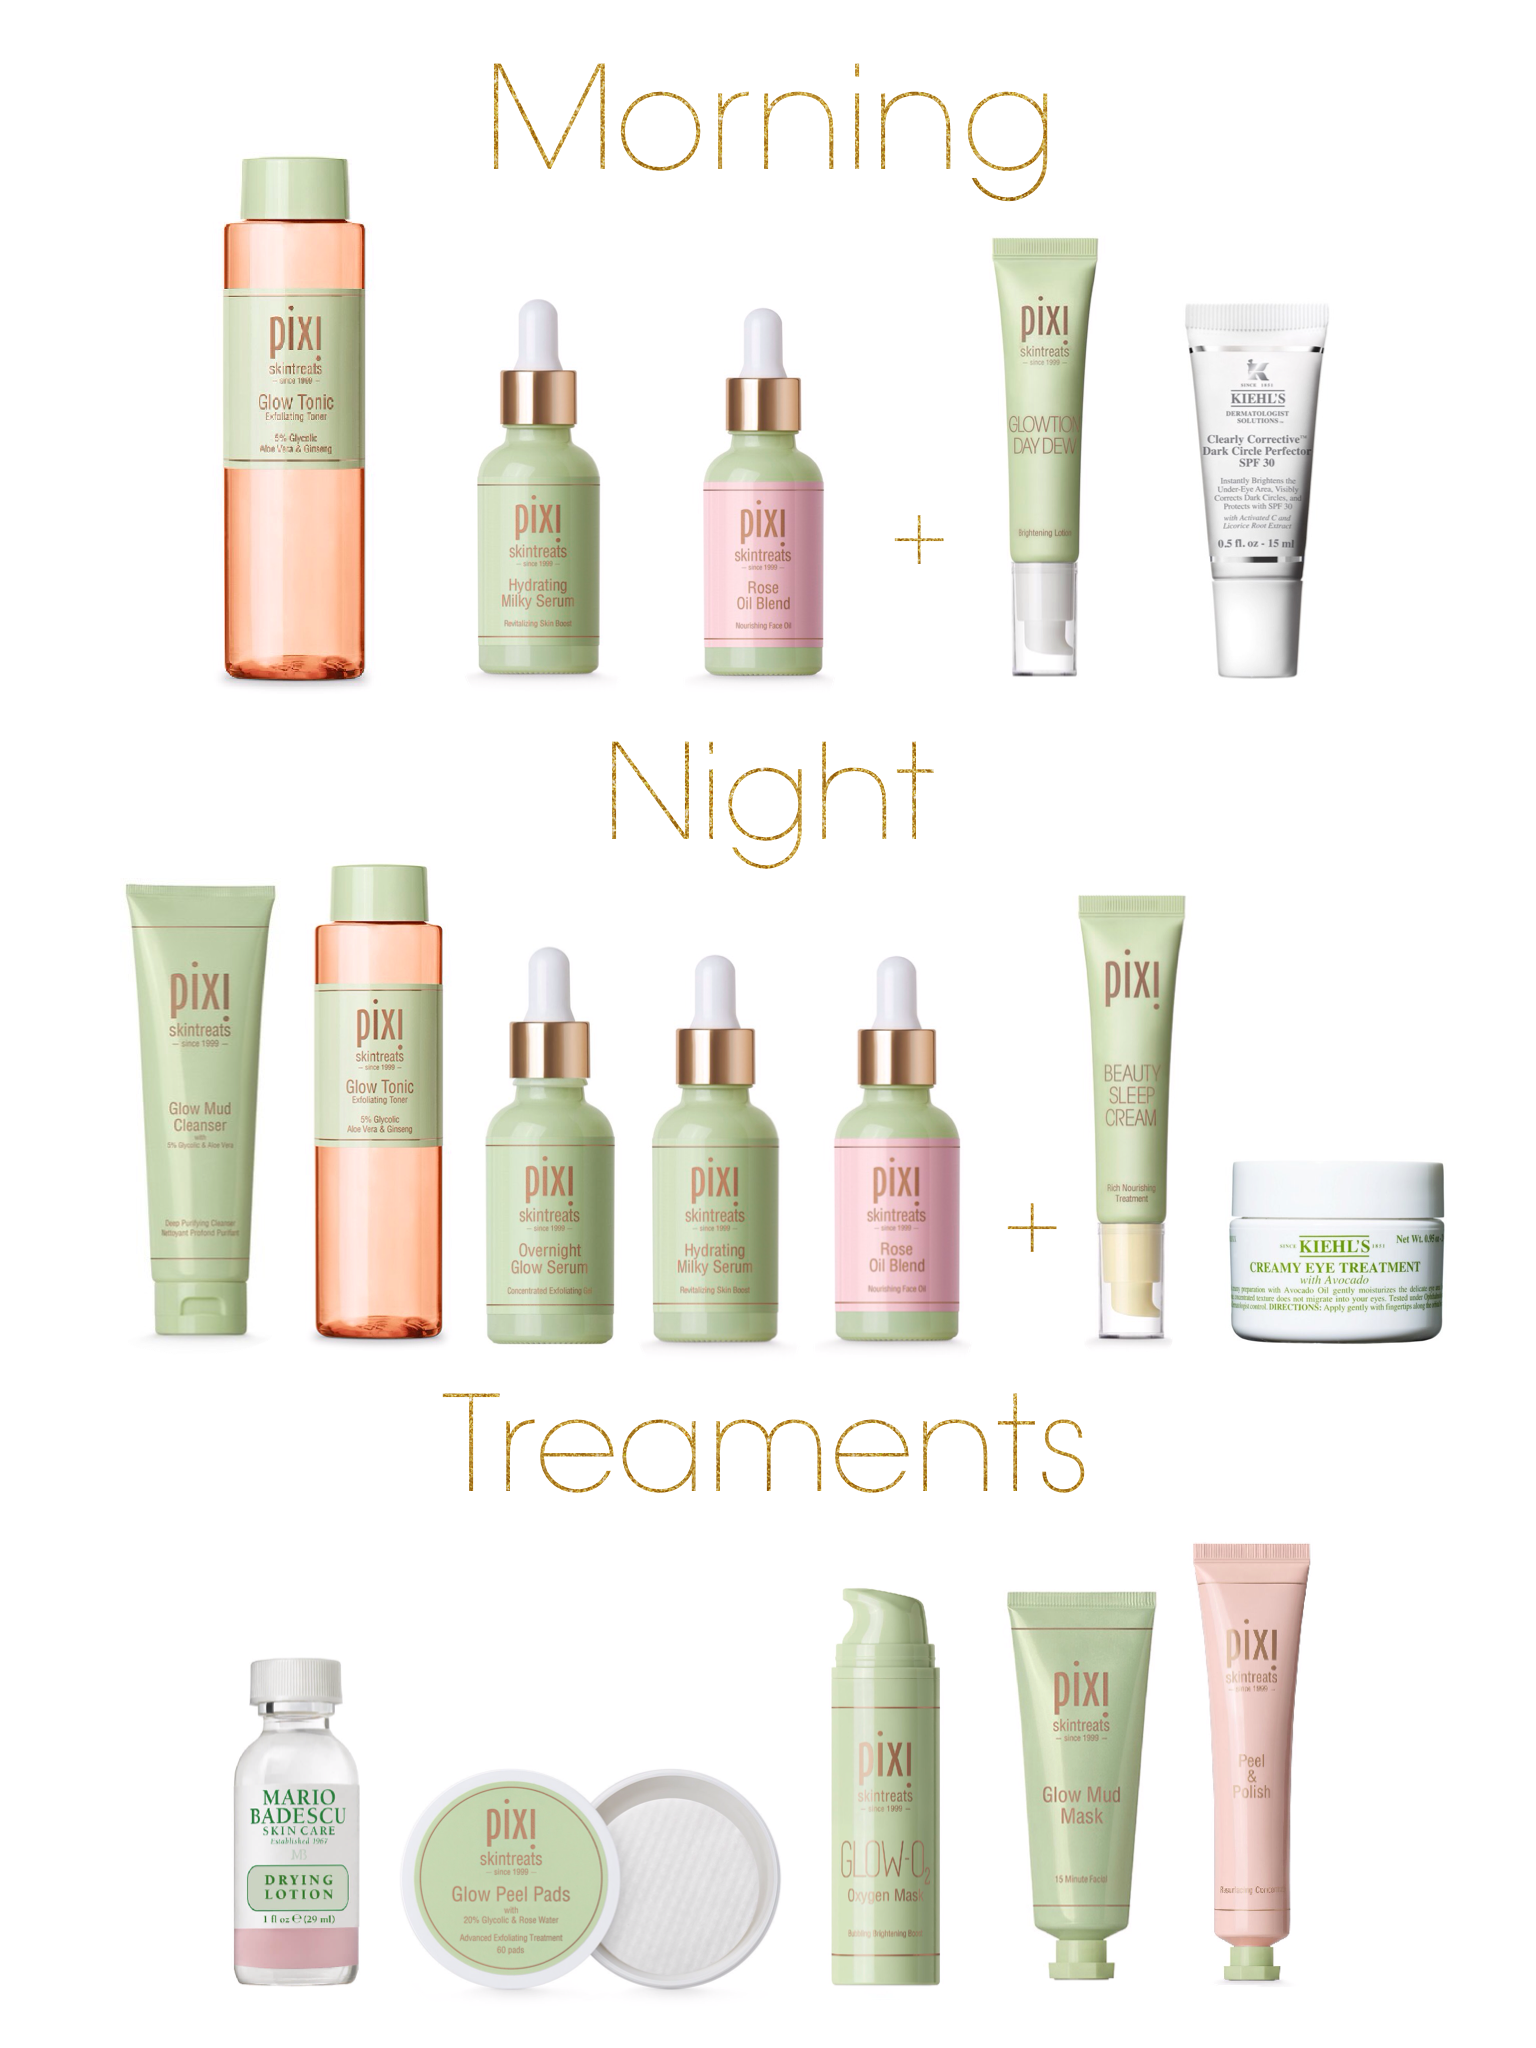 Skincare Routine for Glowing Skin: Pixi Glow Tonic, Hydrating